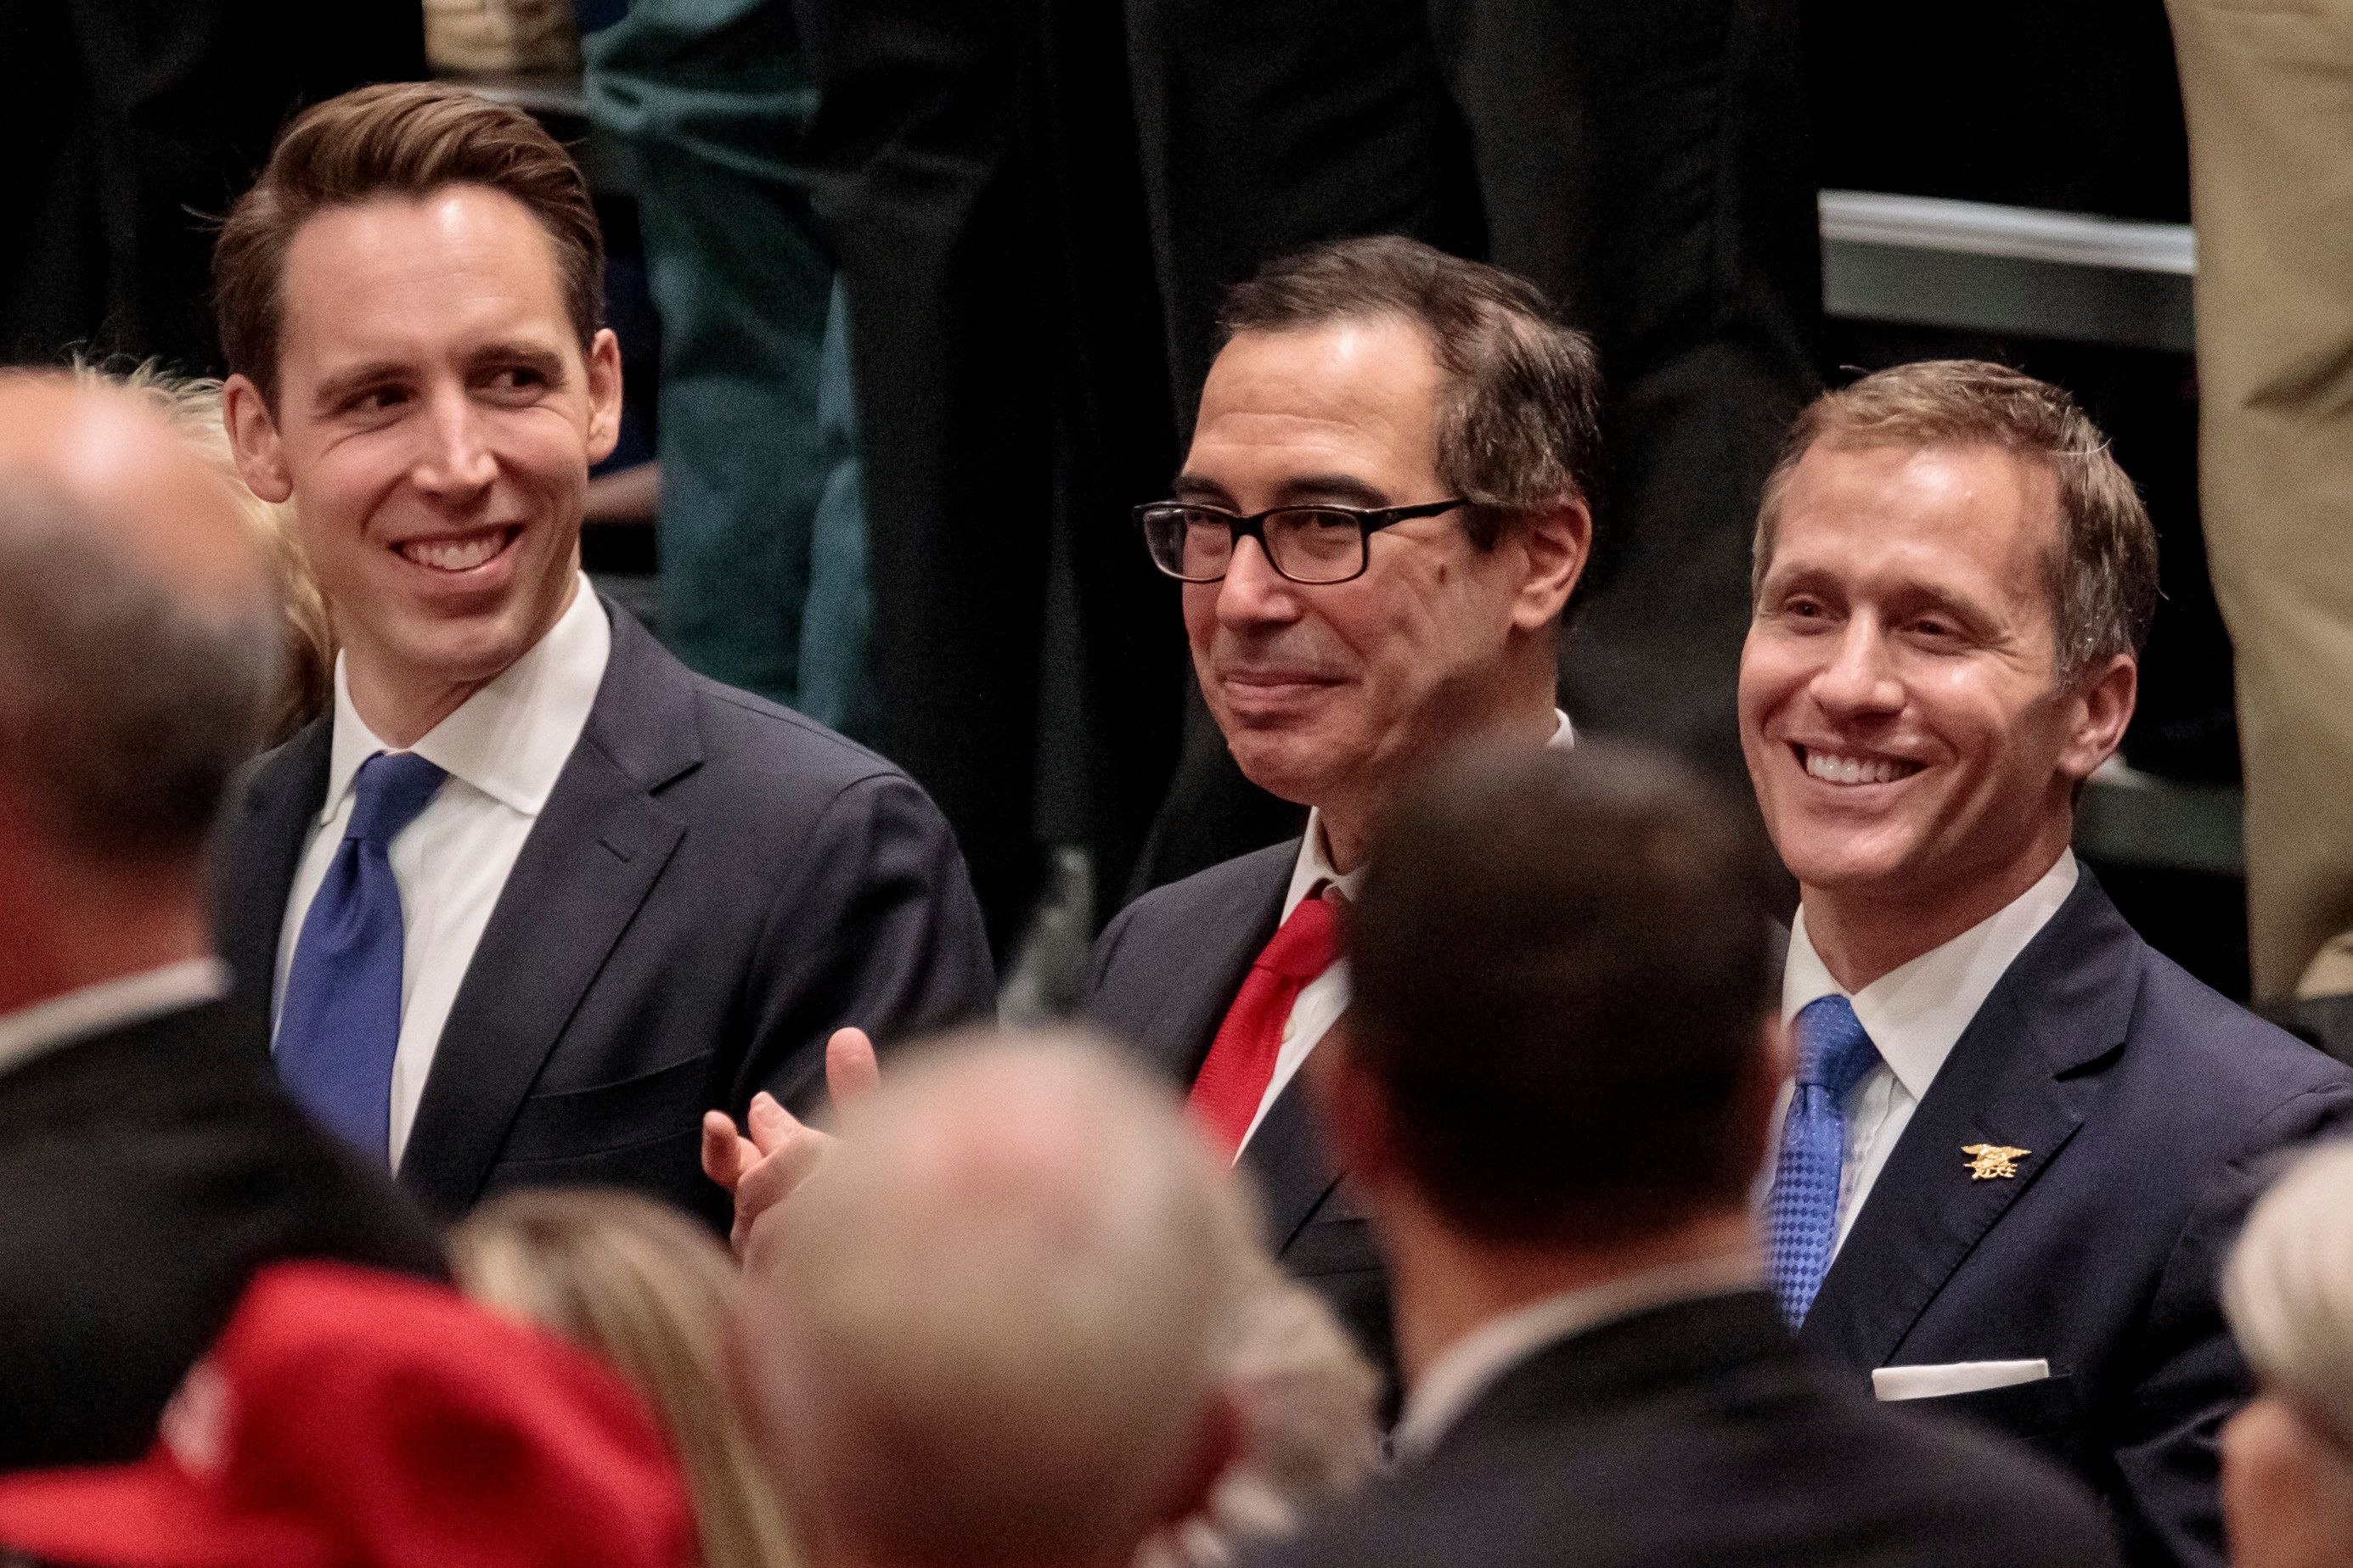 State Attorney General Josh Hawley (left) and Gov. Eric Greitens flank U.S. Treasury Secretary Steven Mnuchin at a Trump rall